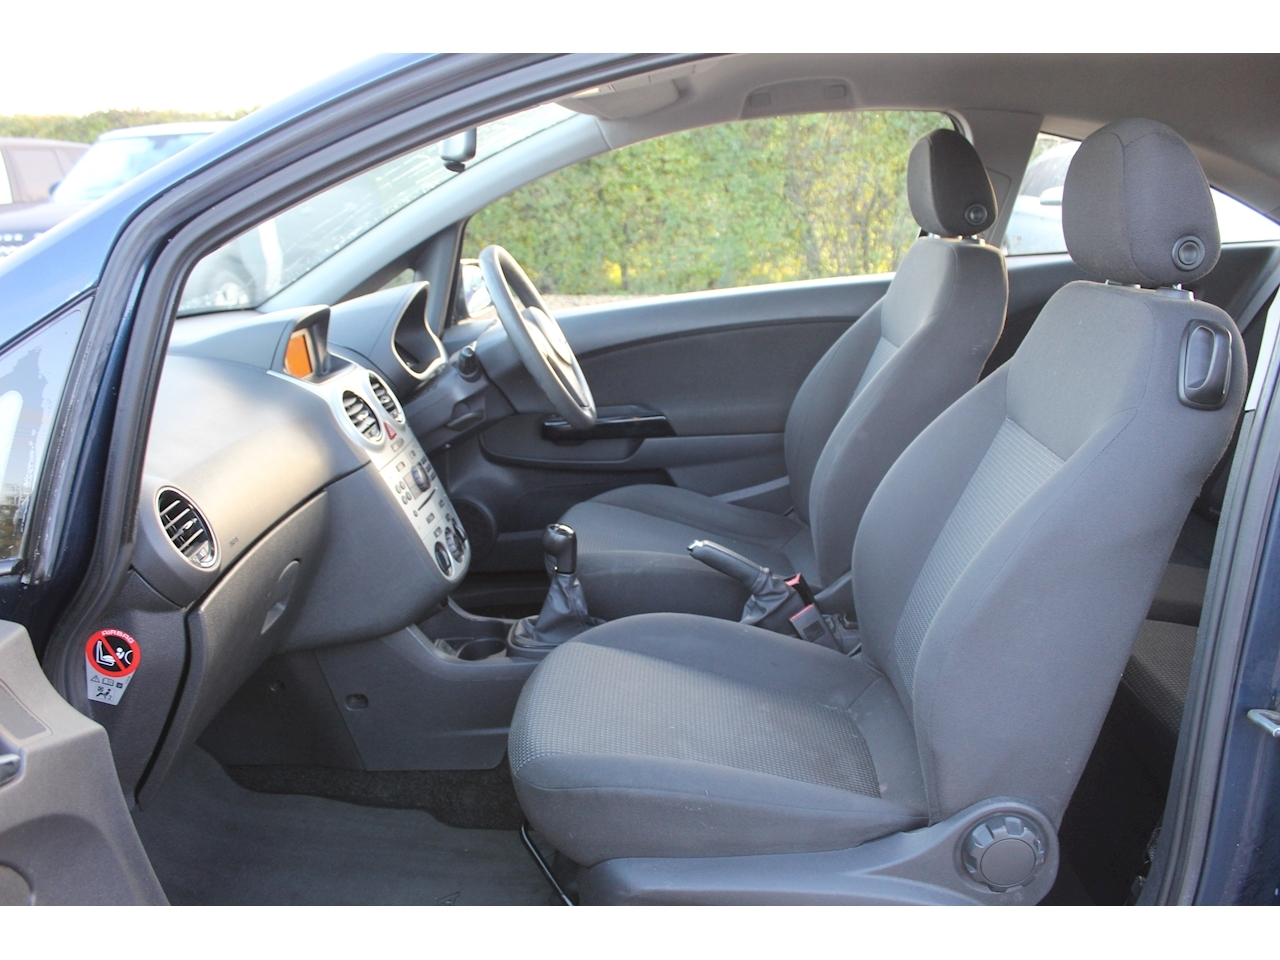 Vauxhall Corsa Excite Hatchback 1.2 Manual Petrol